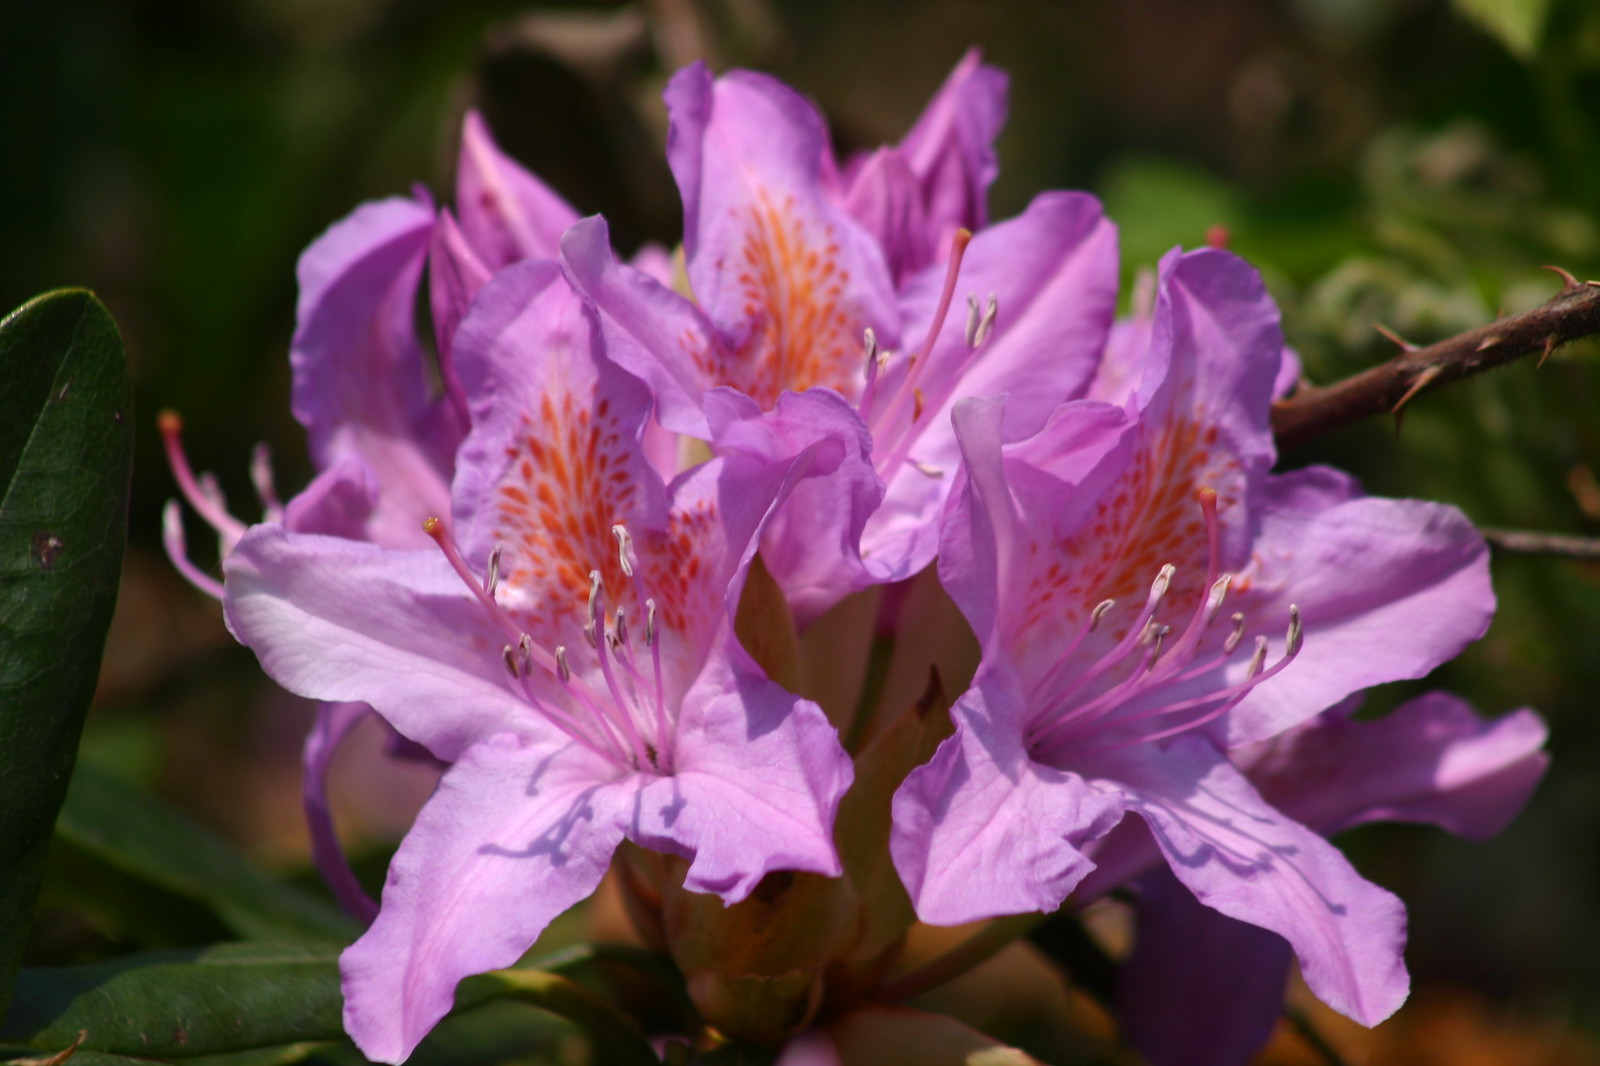 Rhododendron is a nice flower